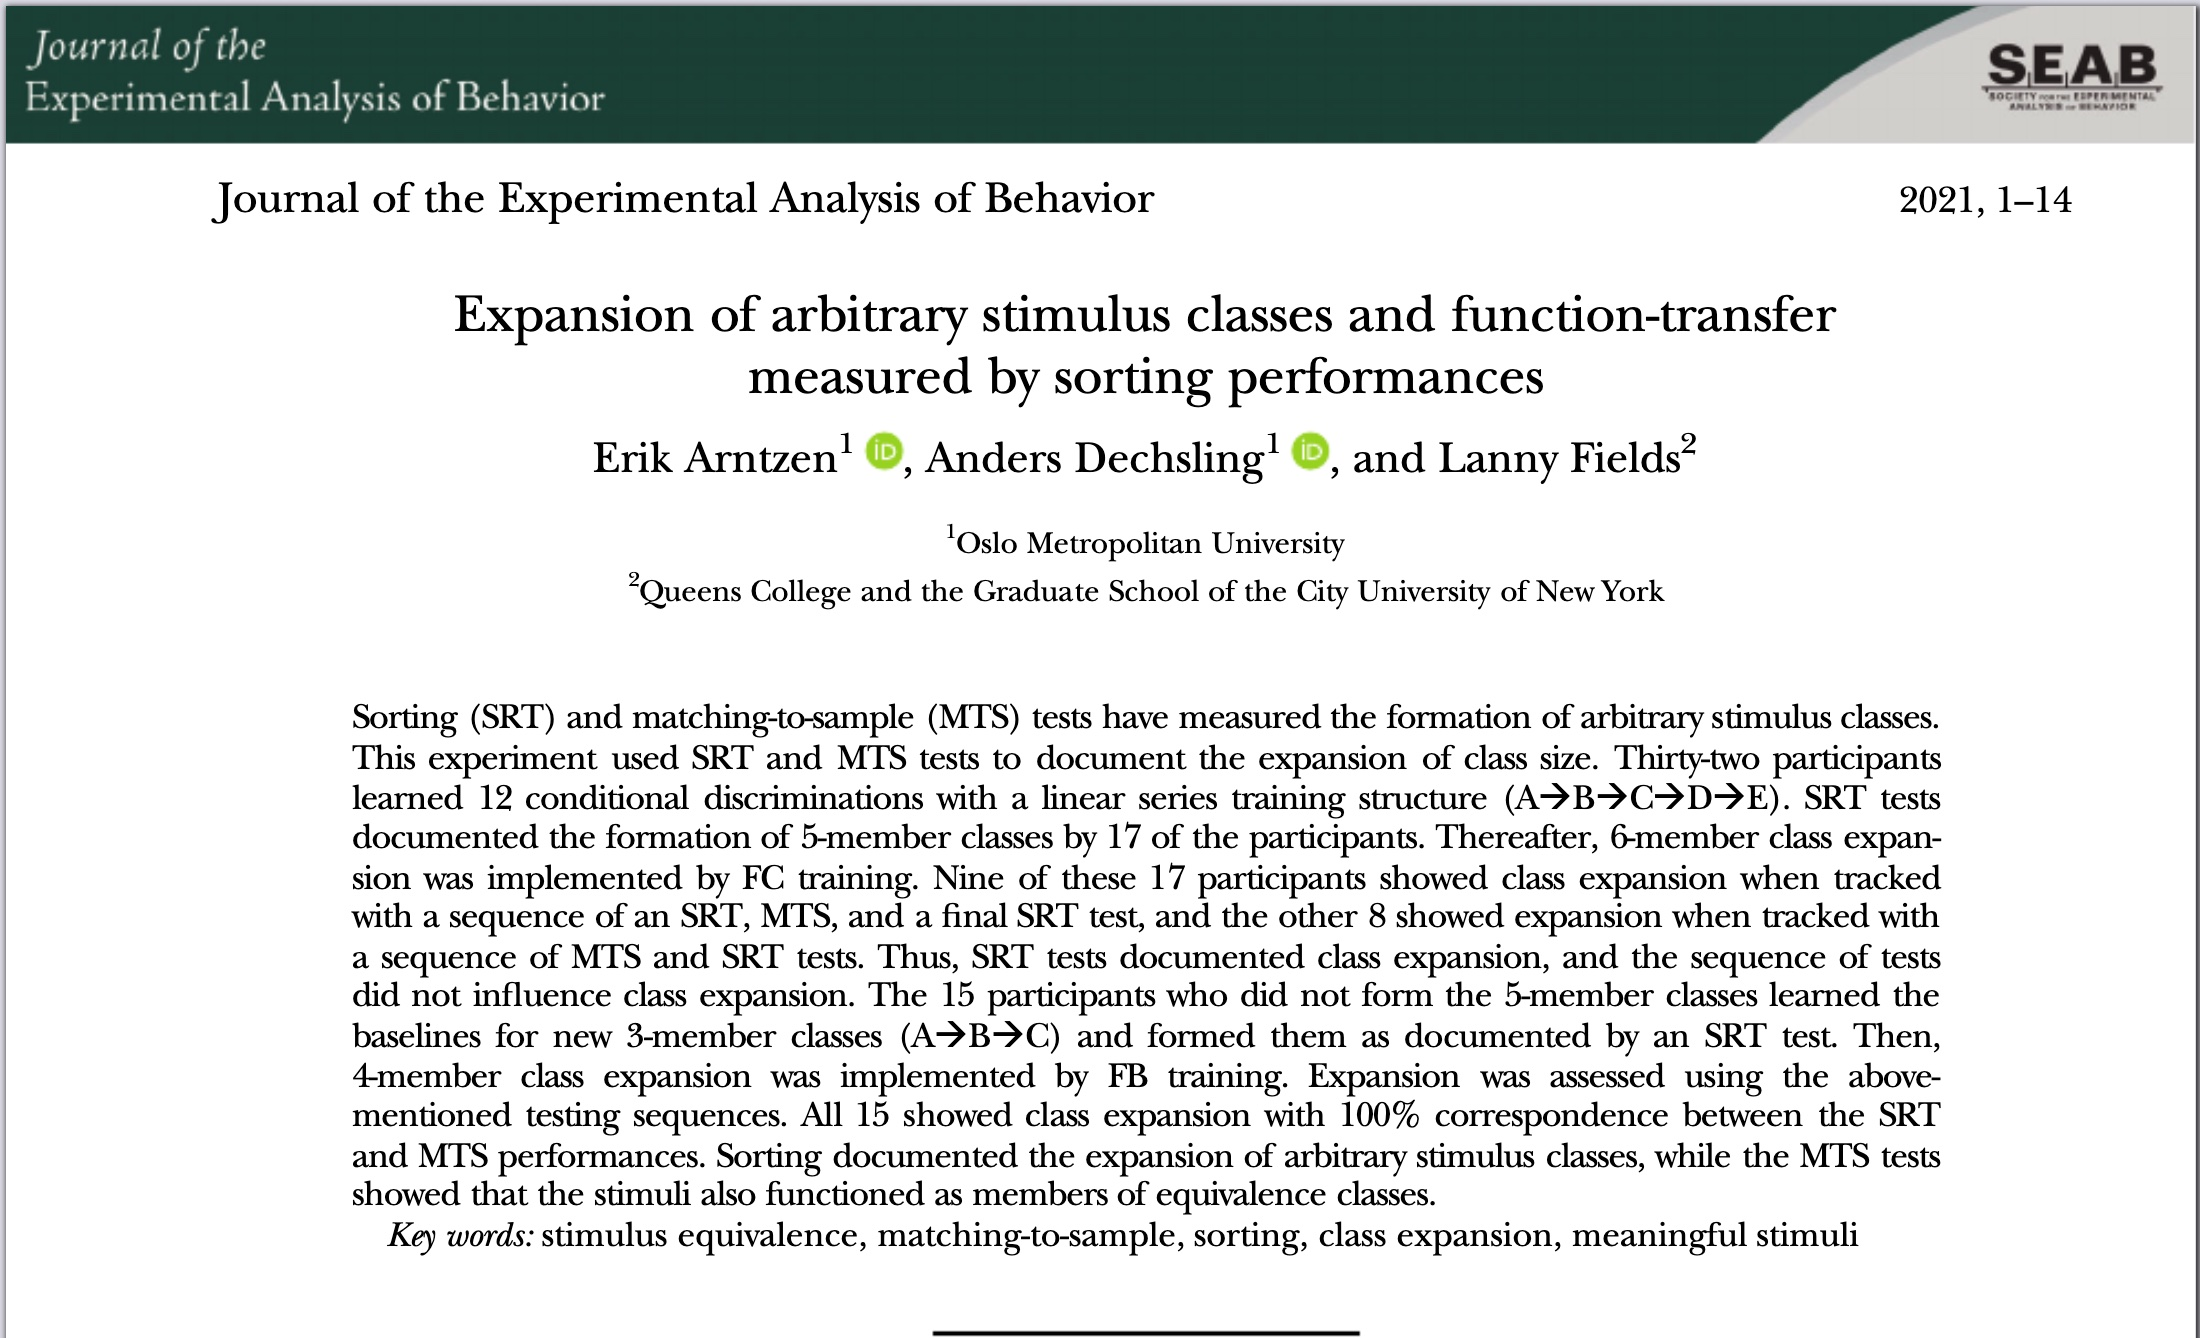 Another paper published online in JEAB (special issue on the topic of Murray Sidman: A Retrospective Appreciation of a Distinguished Scientist)